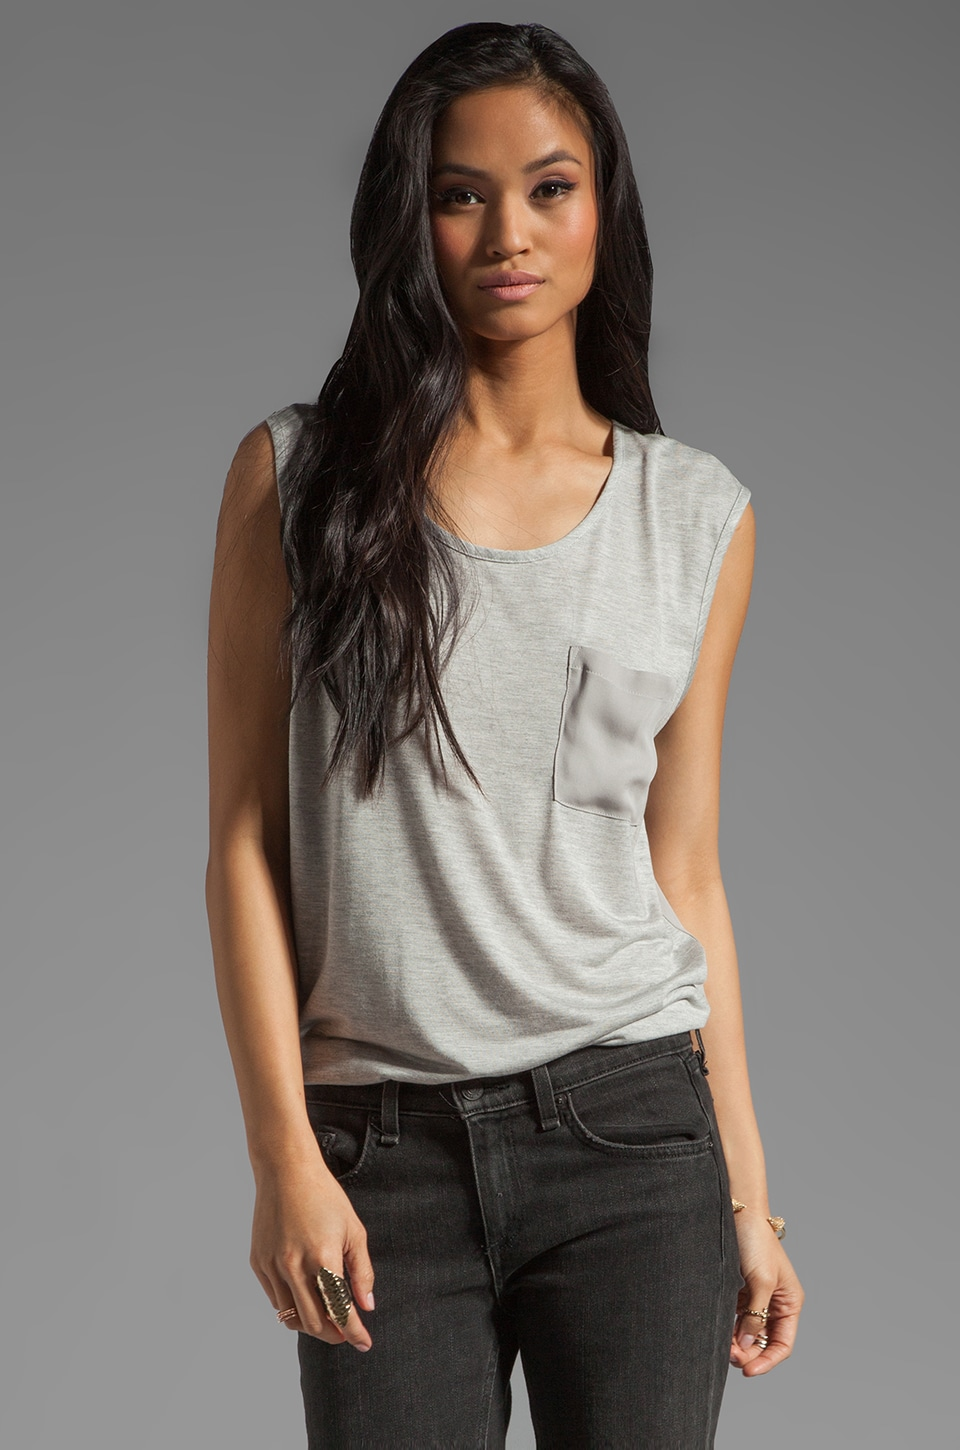 Haute Hippie Tank with Silk Back and Pocket in Light Heather Grey/Smoke